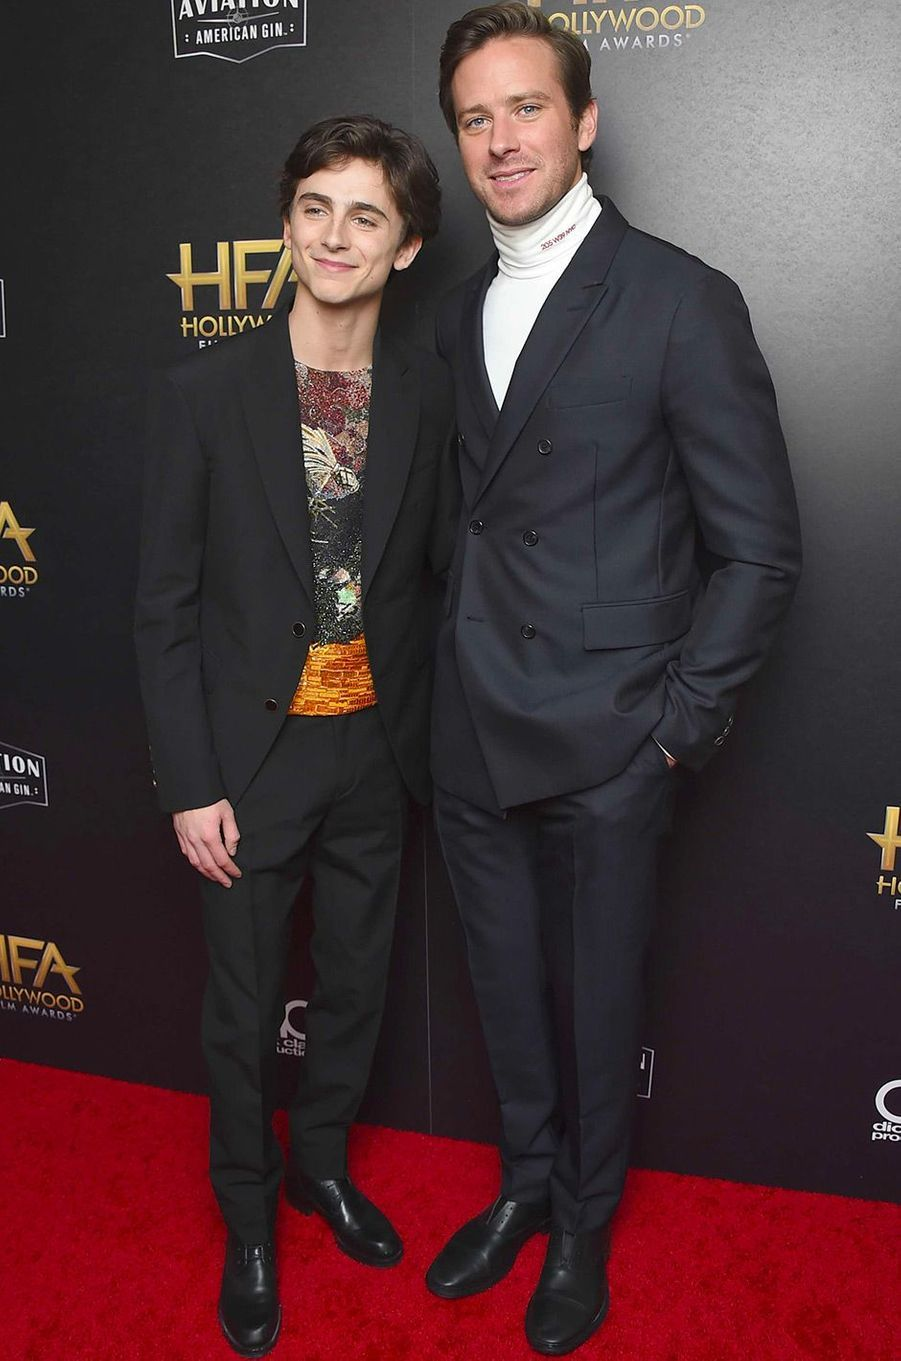 Timothée Chalamet et Armie Hammer aux Hollywood Film Awards